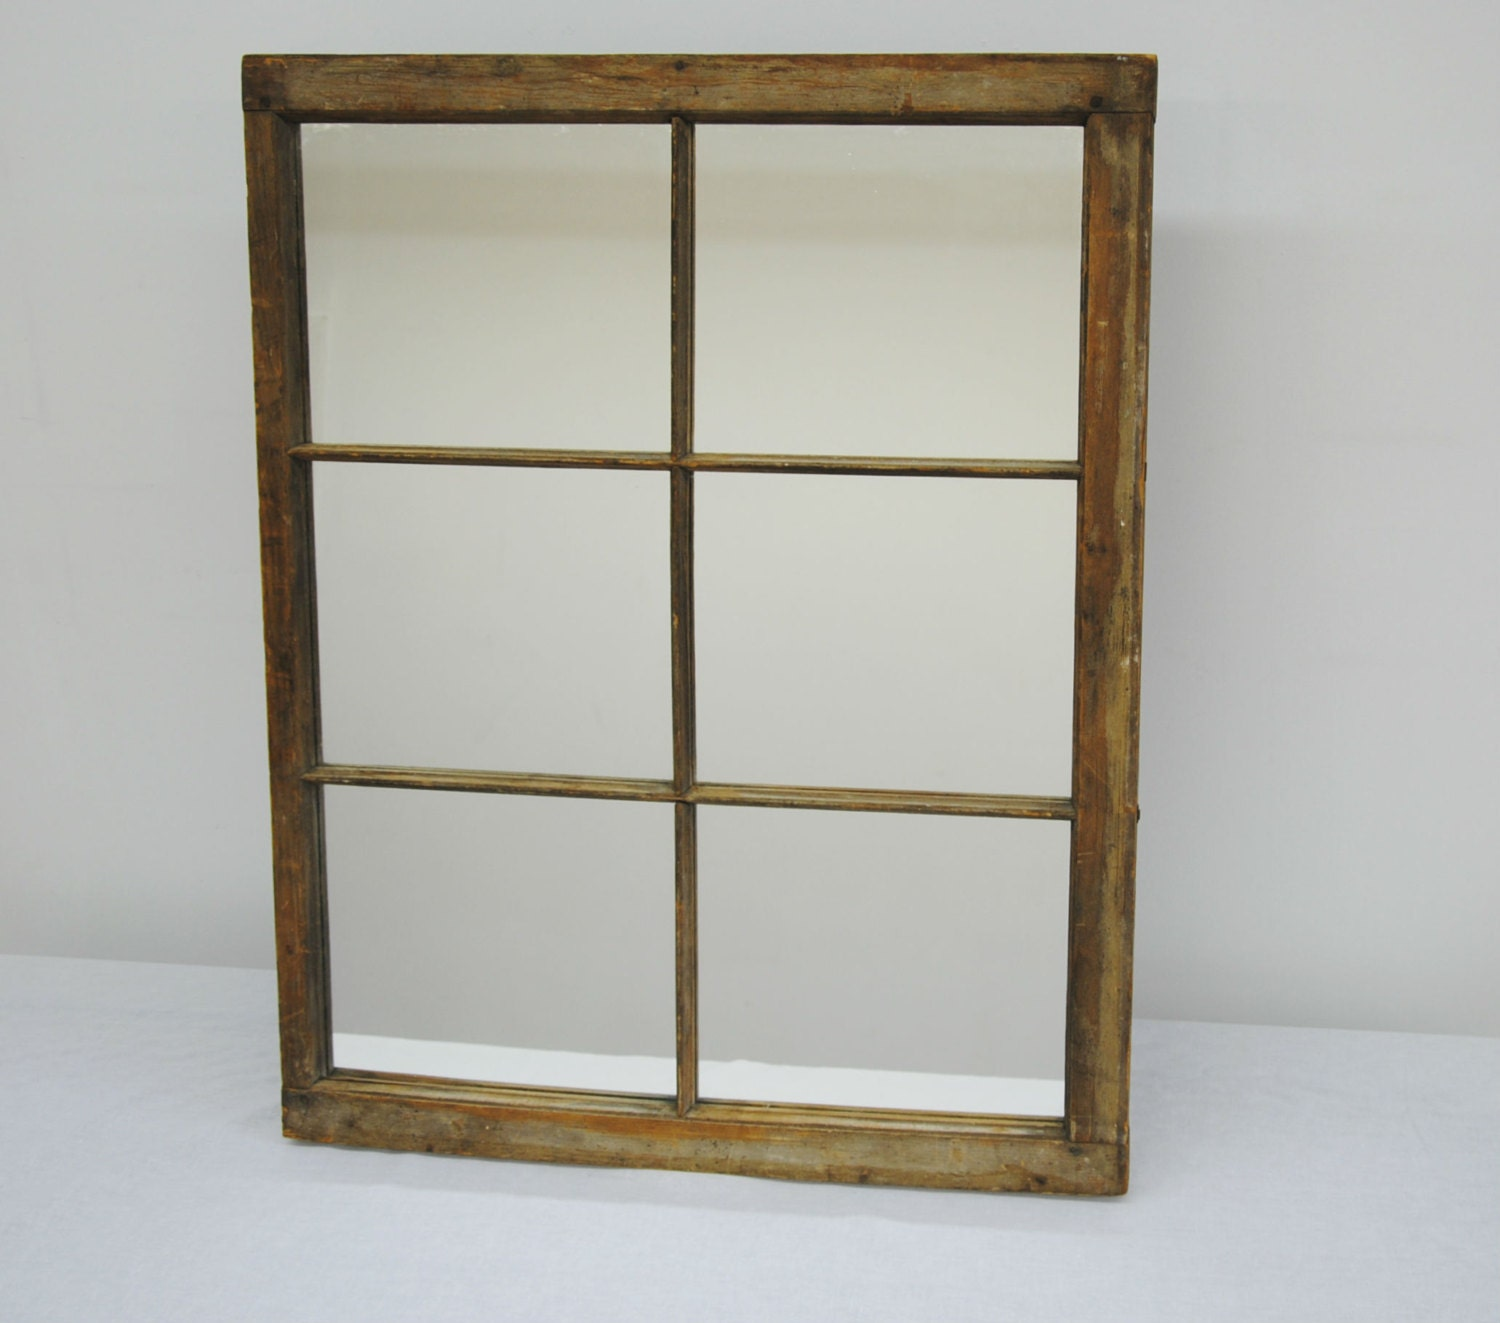 Mirrors with wood frame